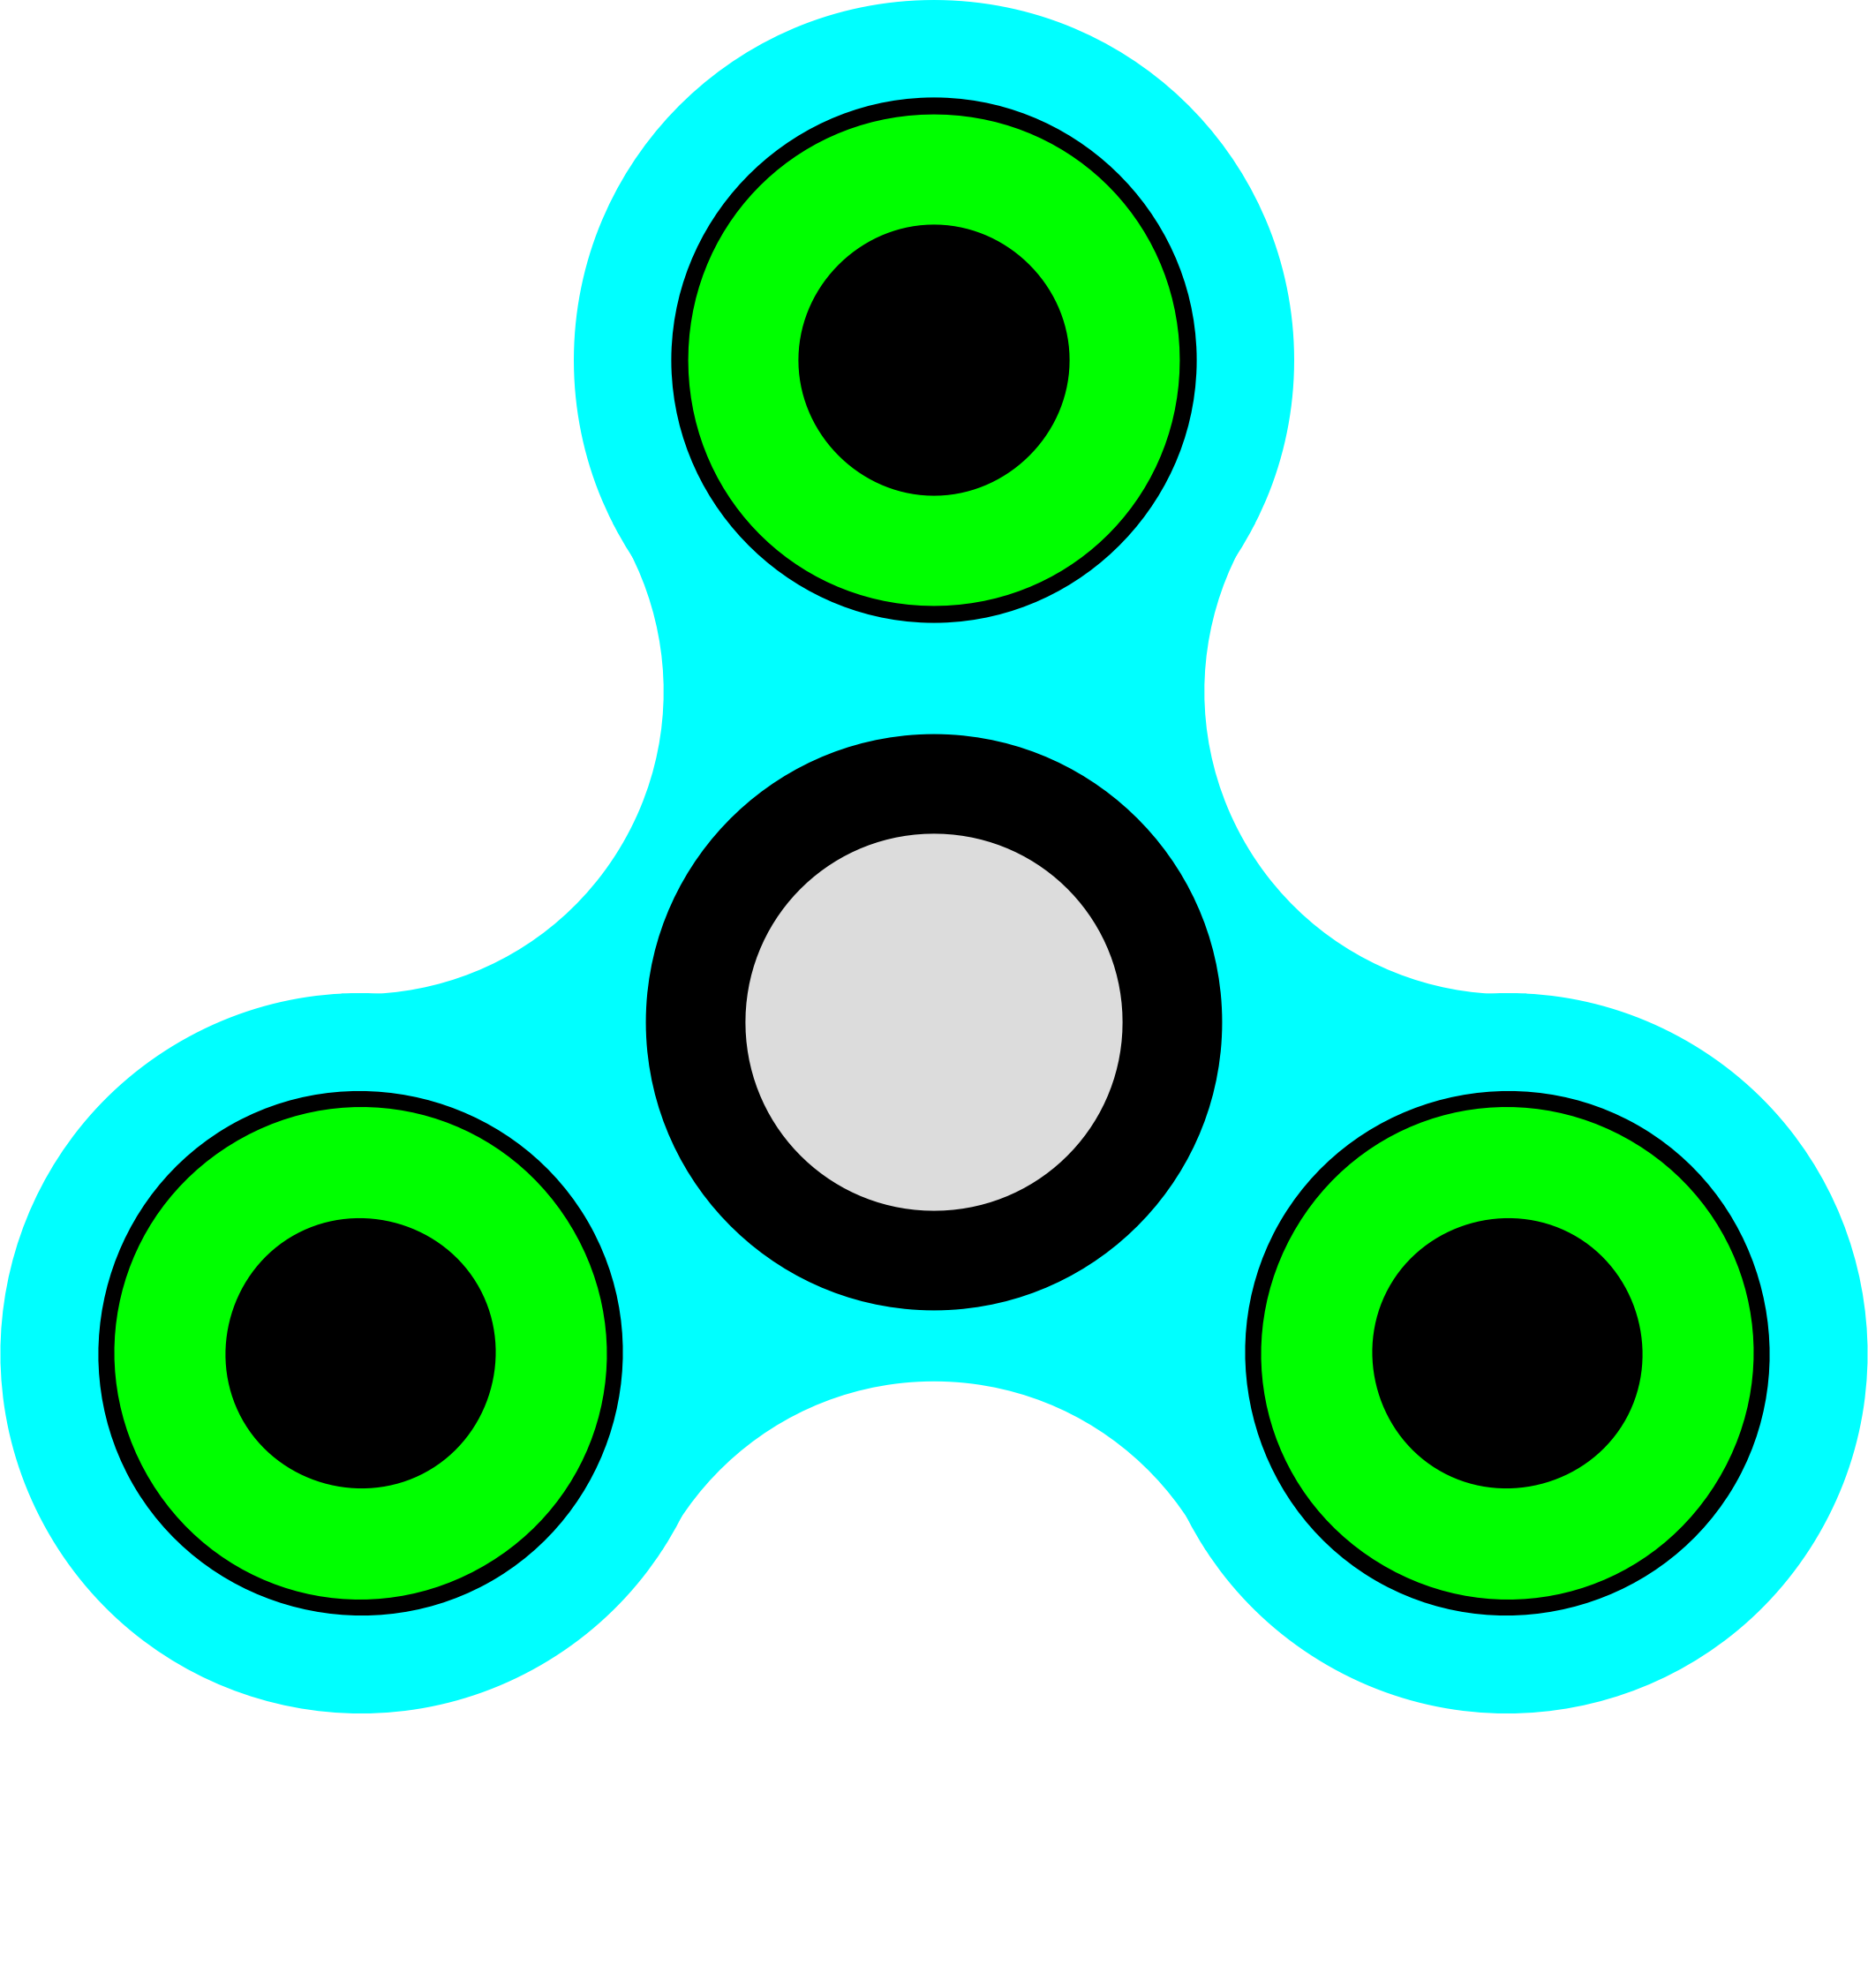 Big image png. Fidget spinner clipart banner free stock